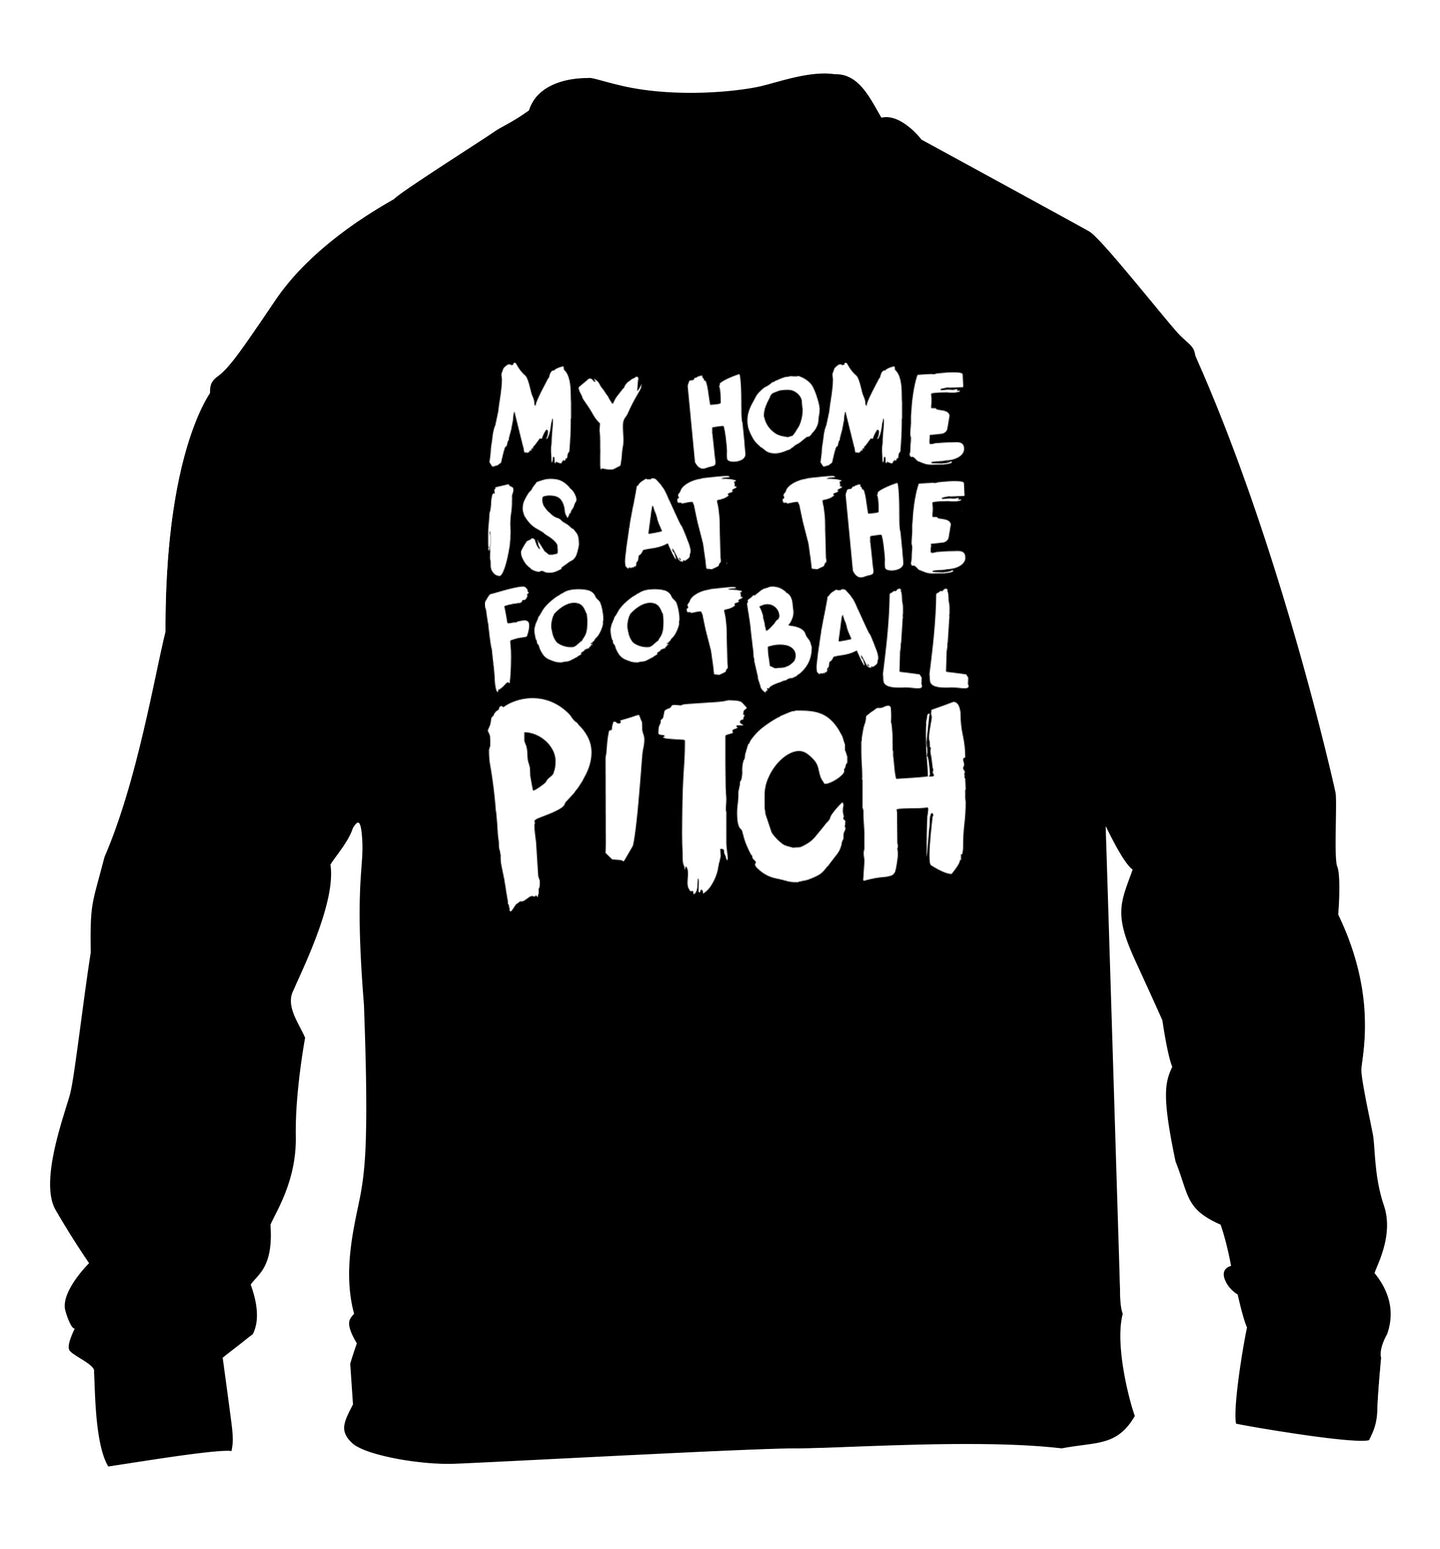 My home is at the football pitch children's black sweater 12-14 Years